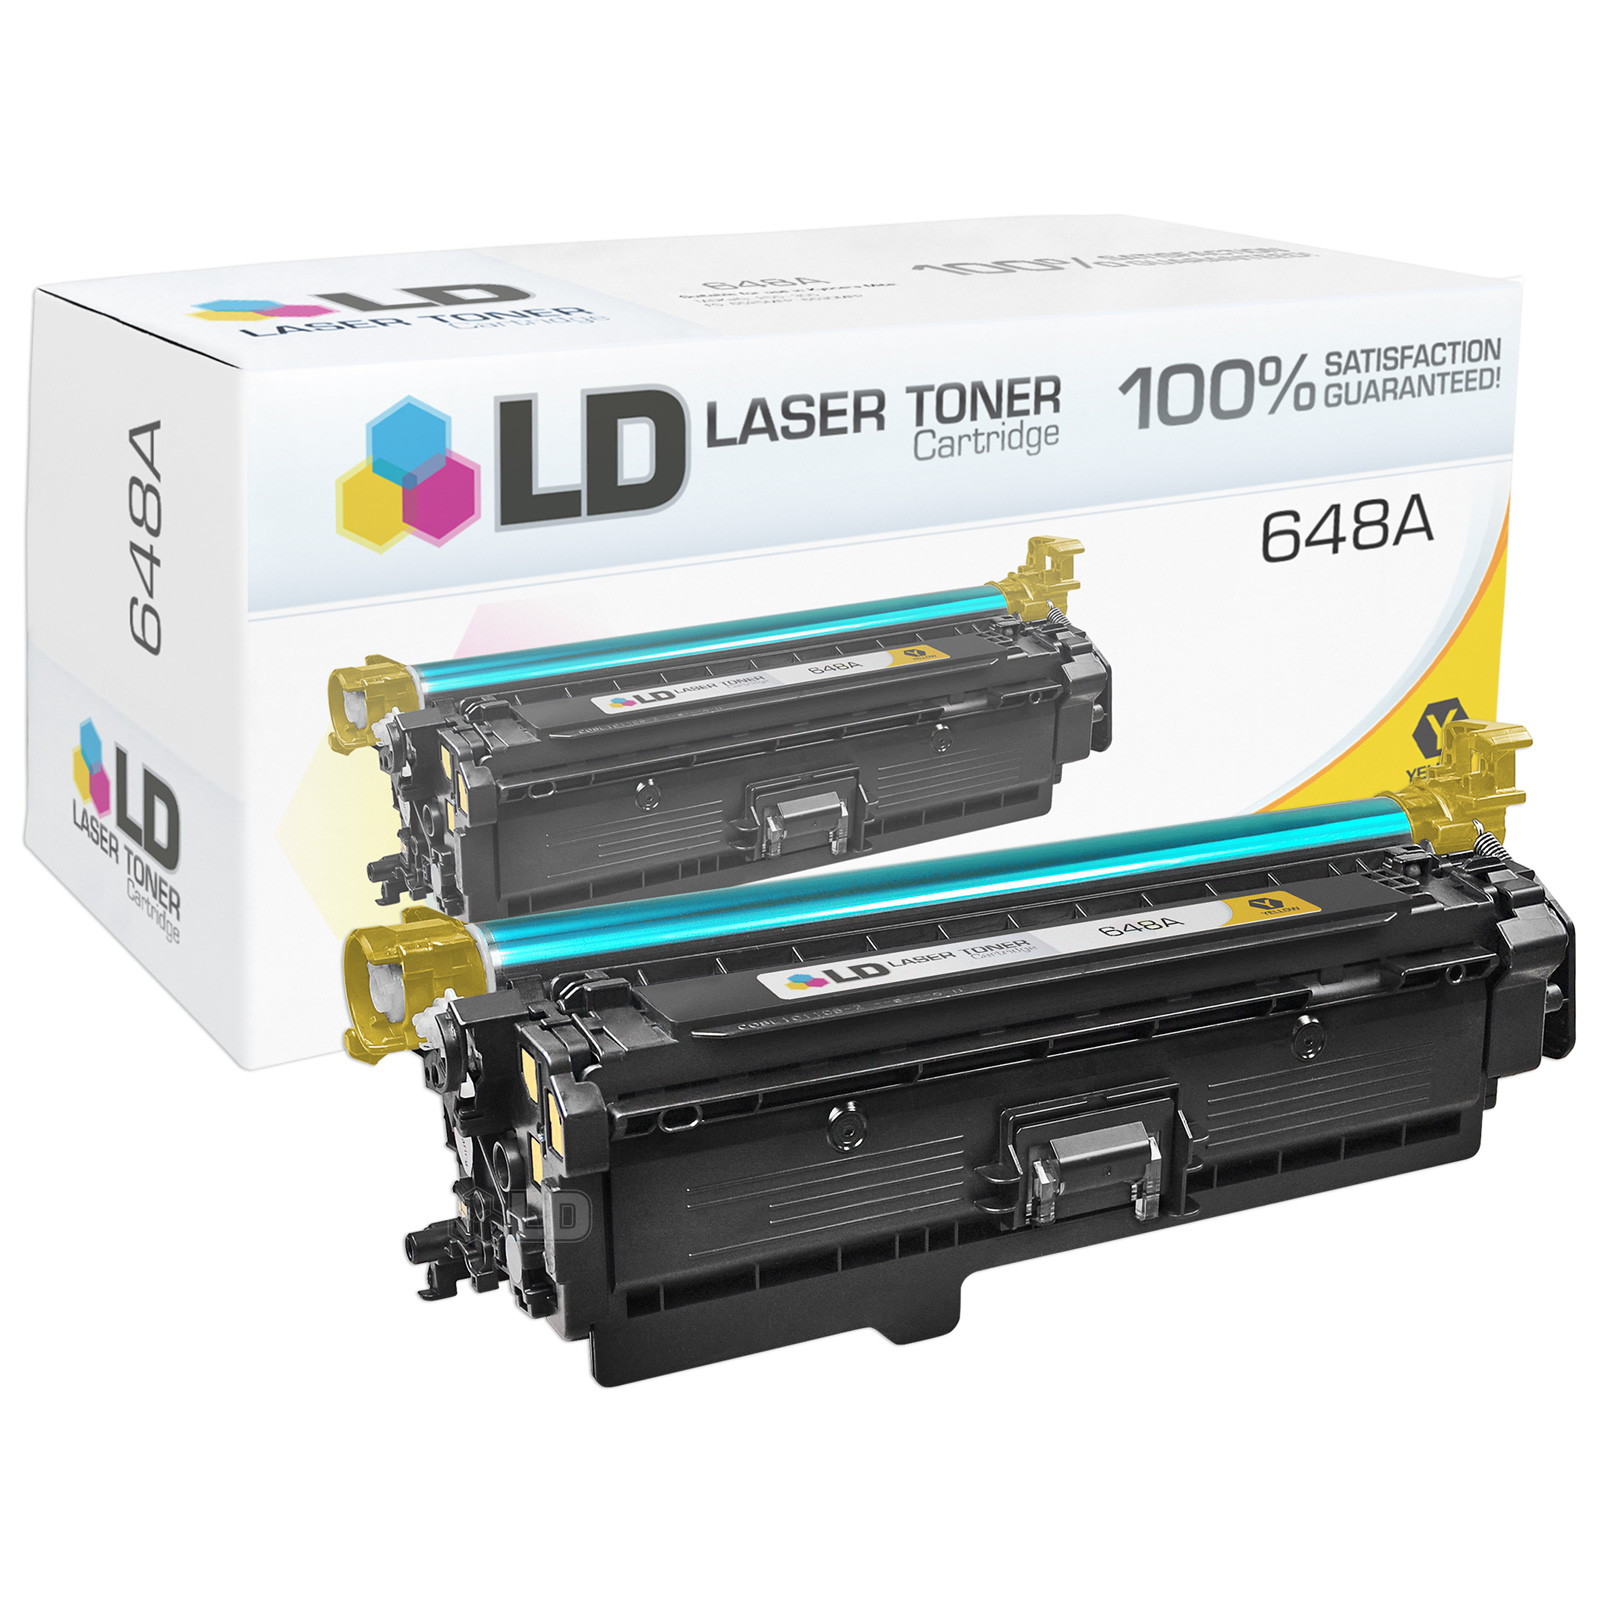 Remanufactured Yellow CE262A / 648A Laser Toner Cartridge for Hewlett Packard HP CP4025/CP4525